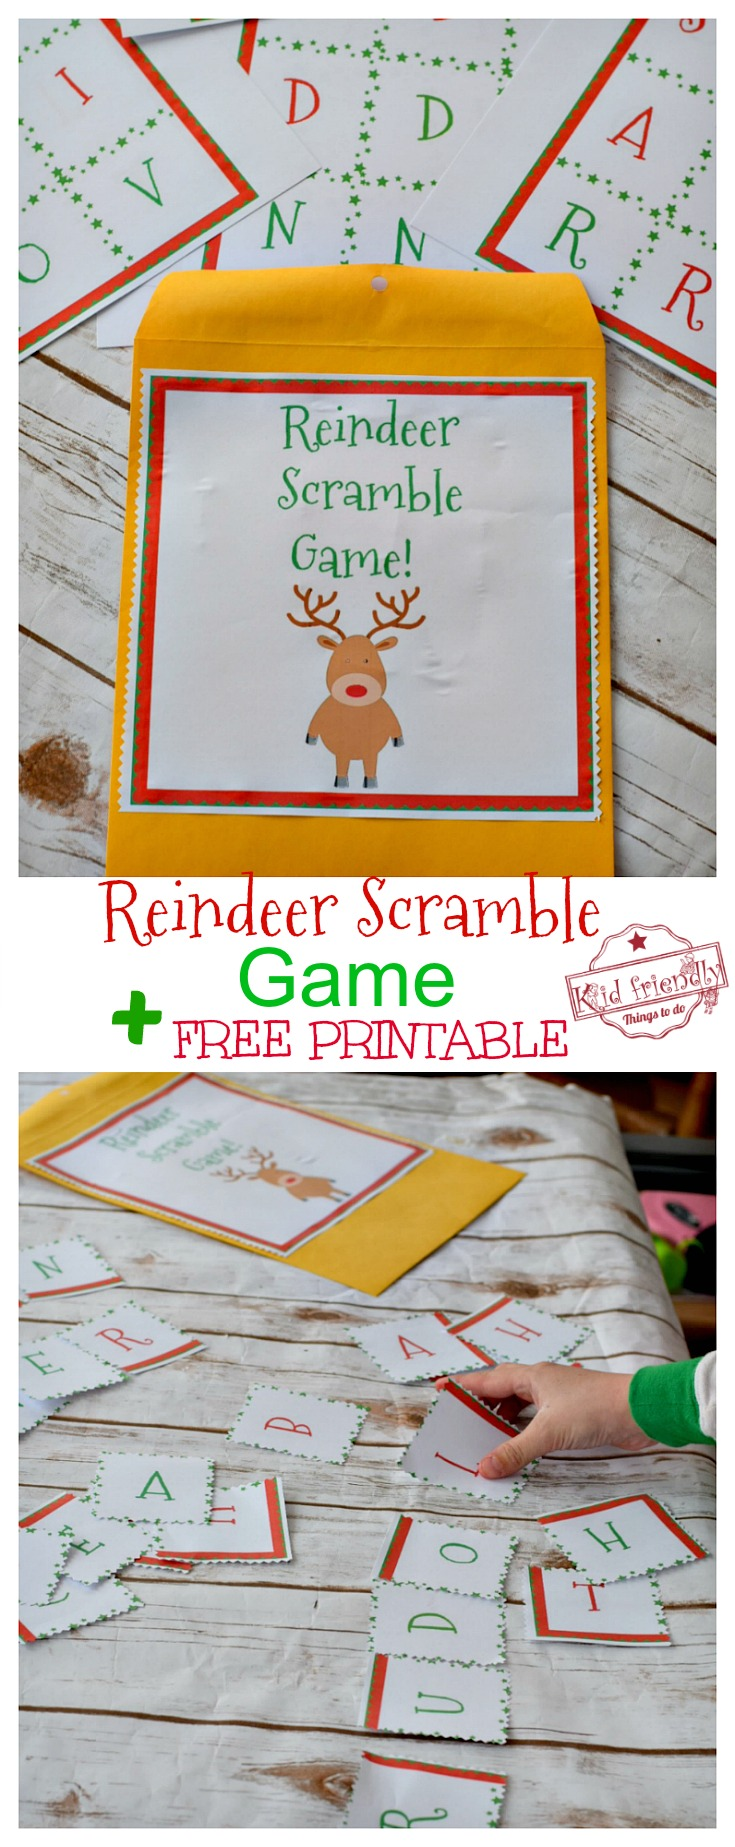 reindeer scramble game for kids to play at christmas